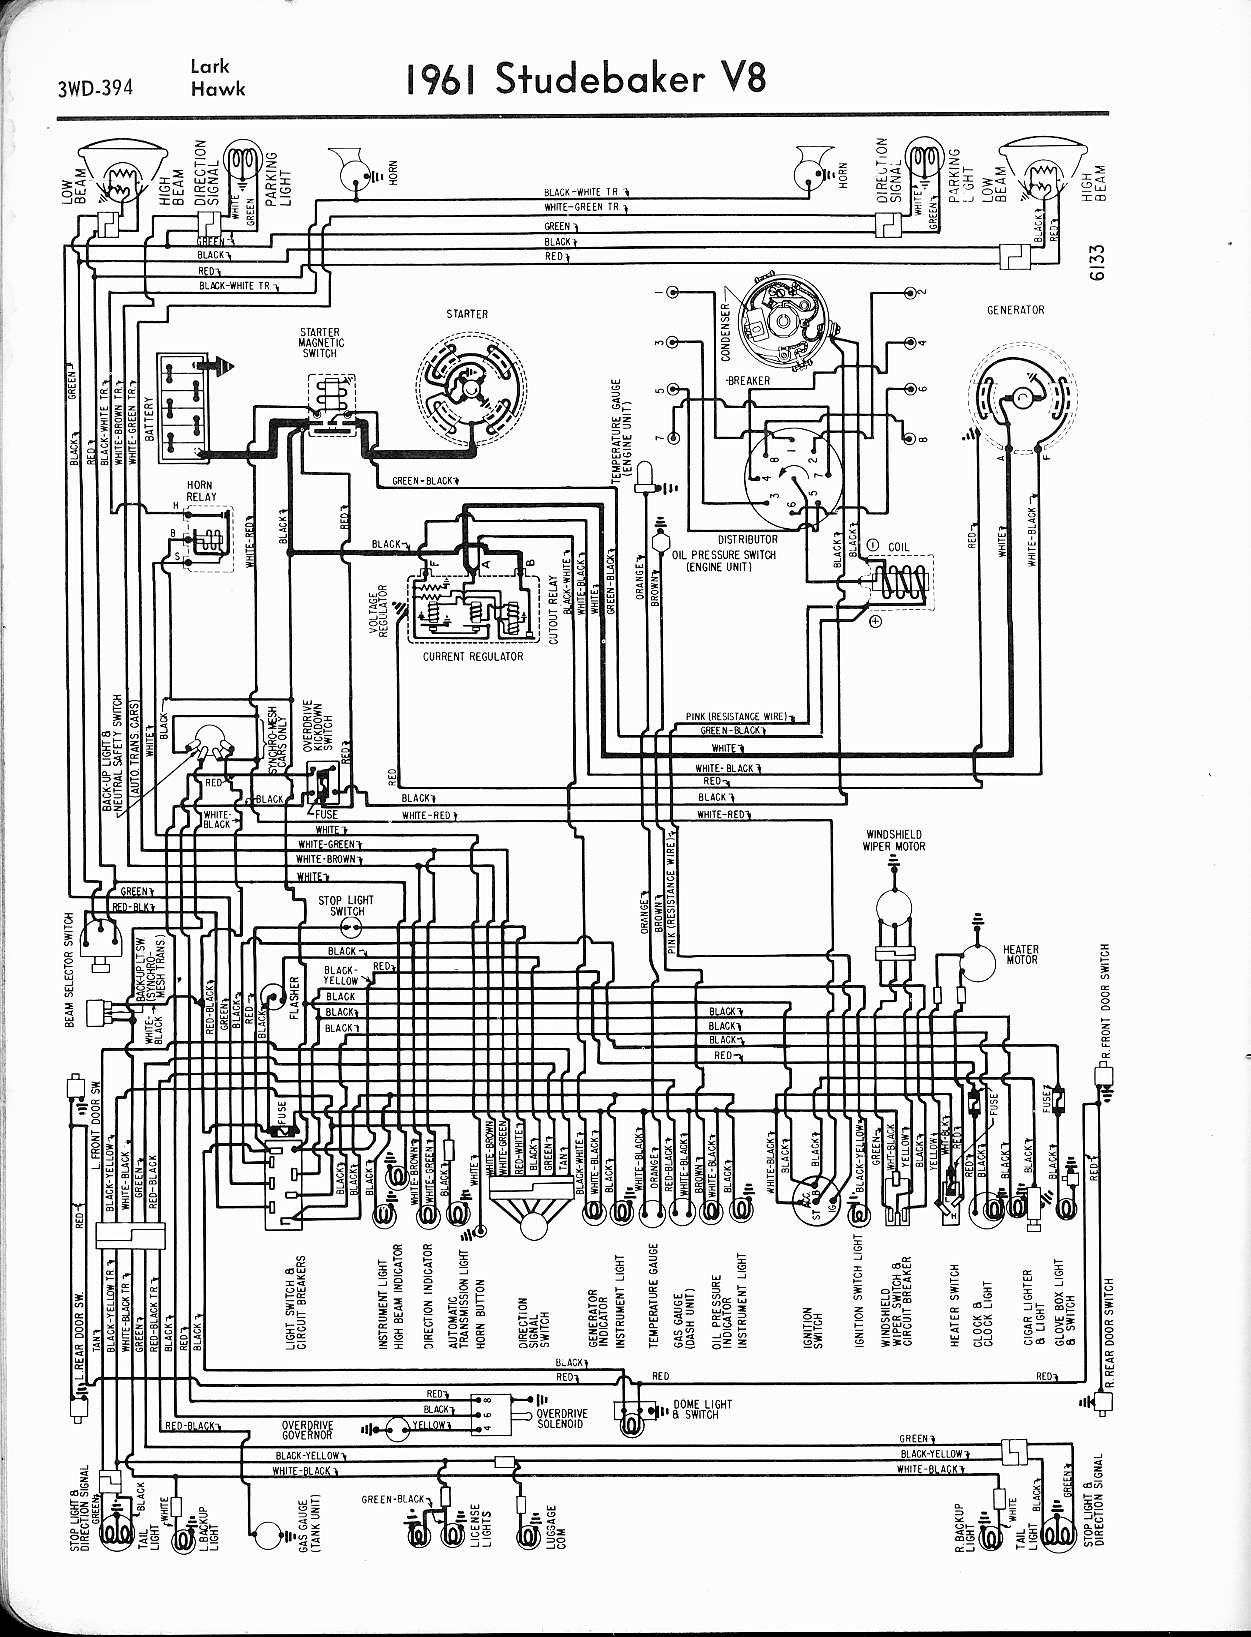 studebaker wiring diagrams the old car manual project rh oldcarmanualproject com 1963 Avanti Interior 1963 Studebaker Avanti R1